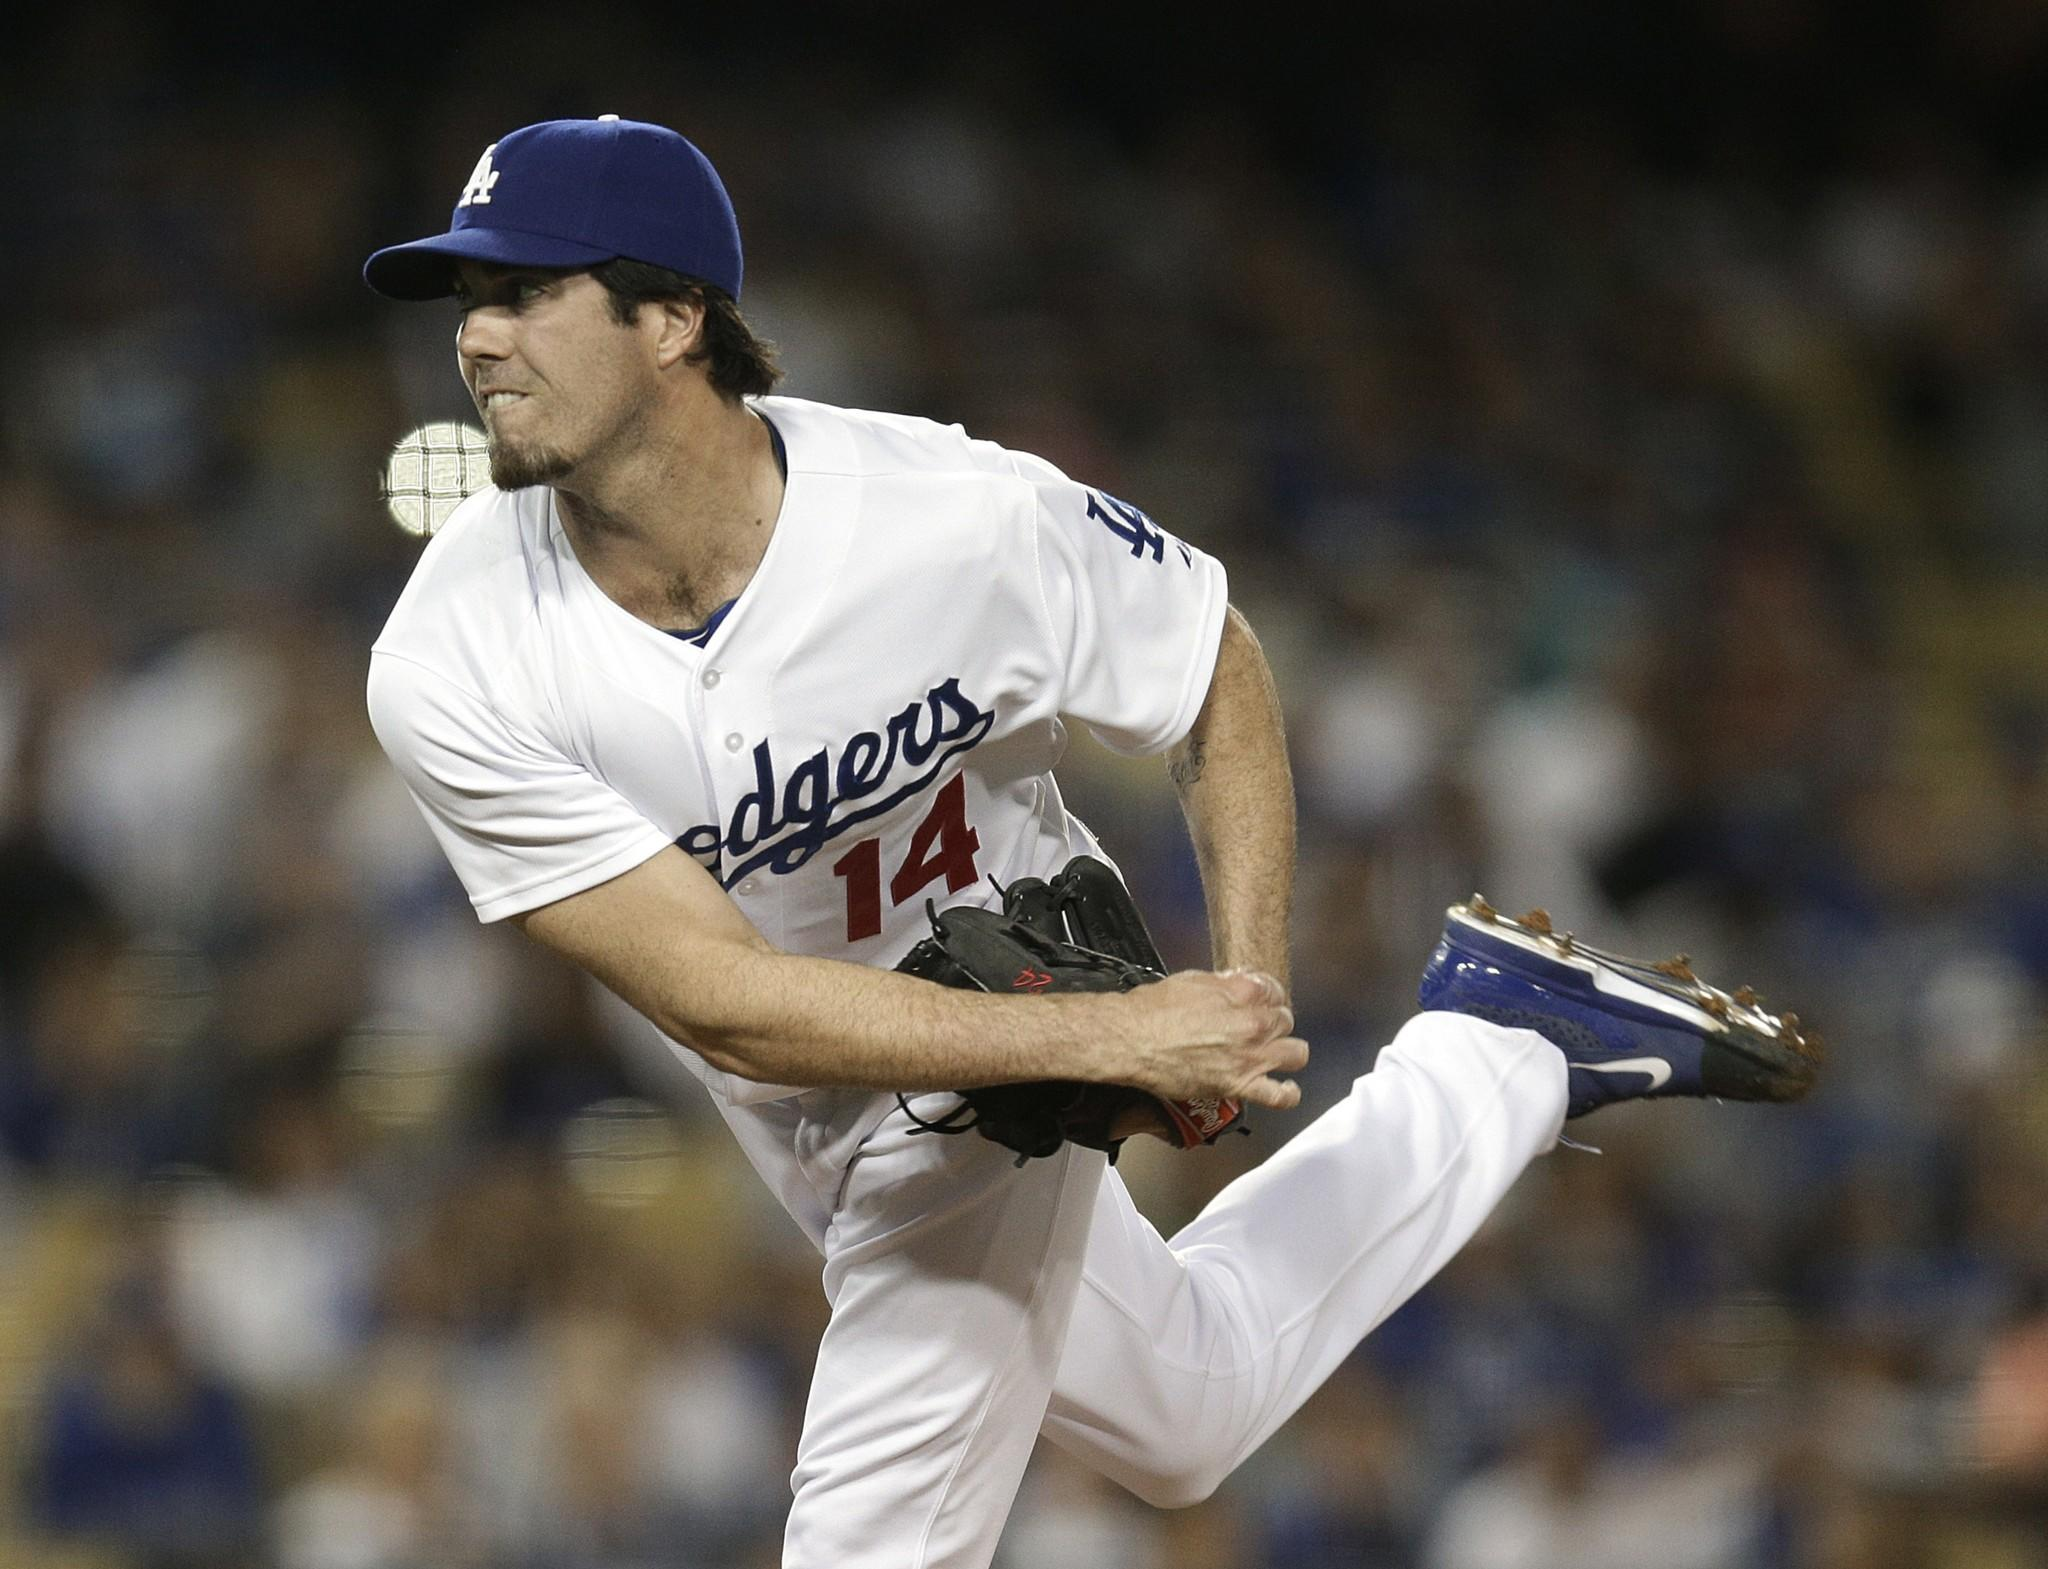 Dan Haren struck out seven batters while giving up one earned run on seven hits and two walks over six innings for the Dodgers on Thursday. The Dodgers lost to the Philadelphia Phillies, 7-3.